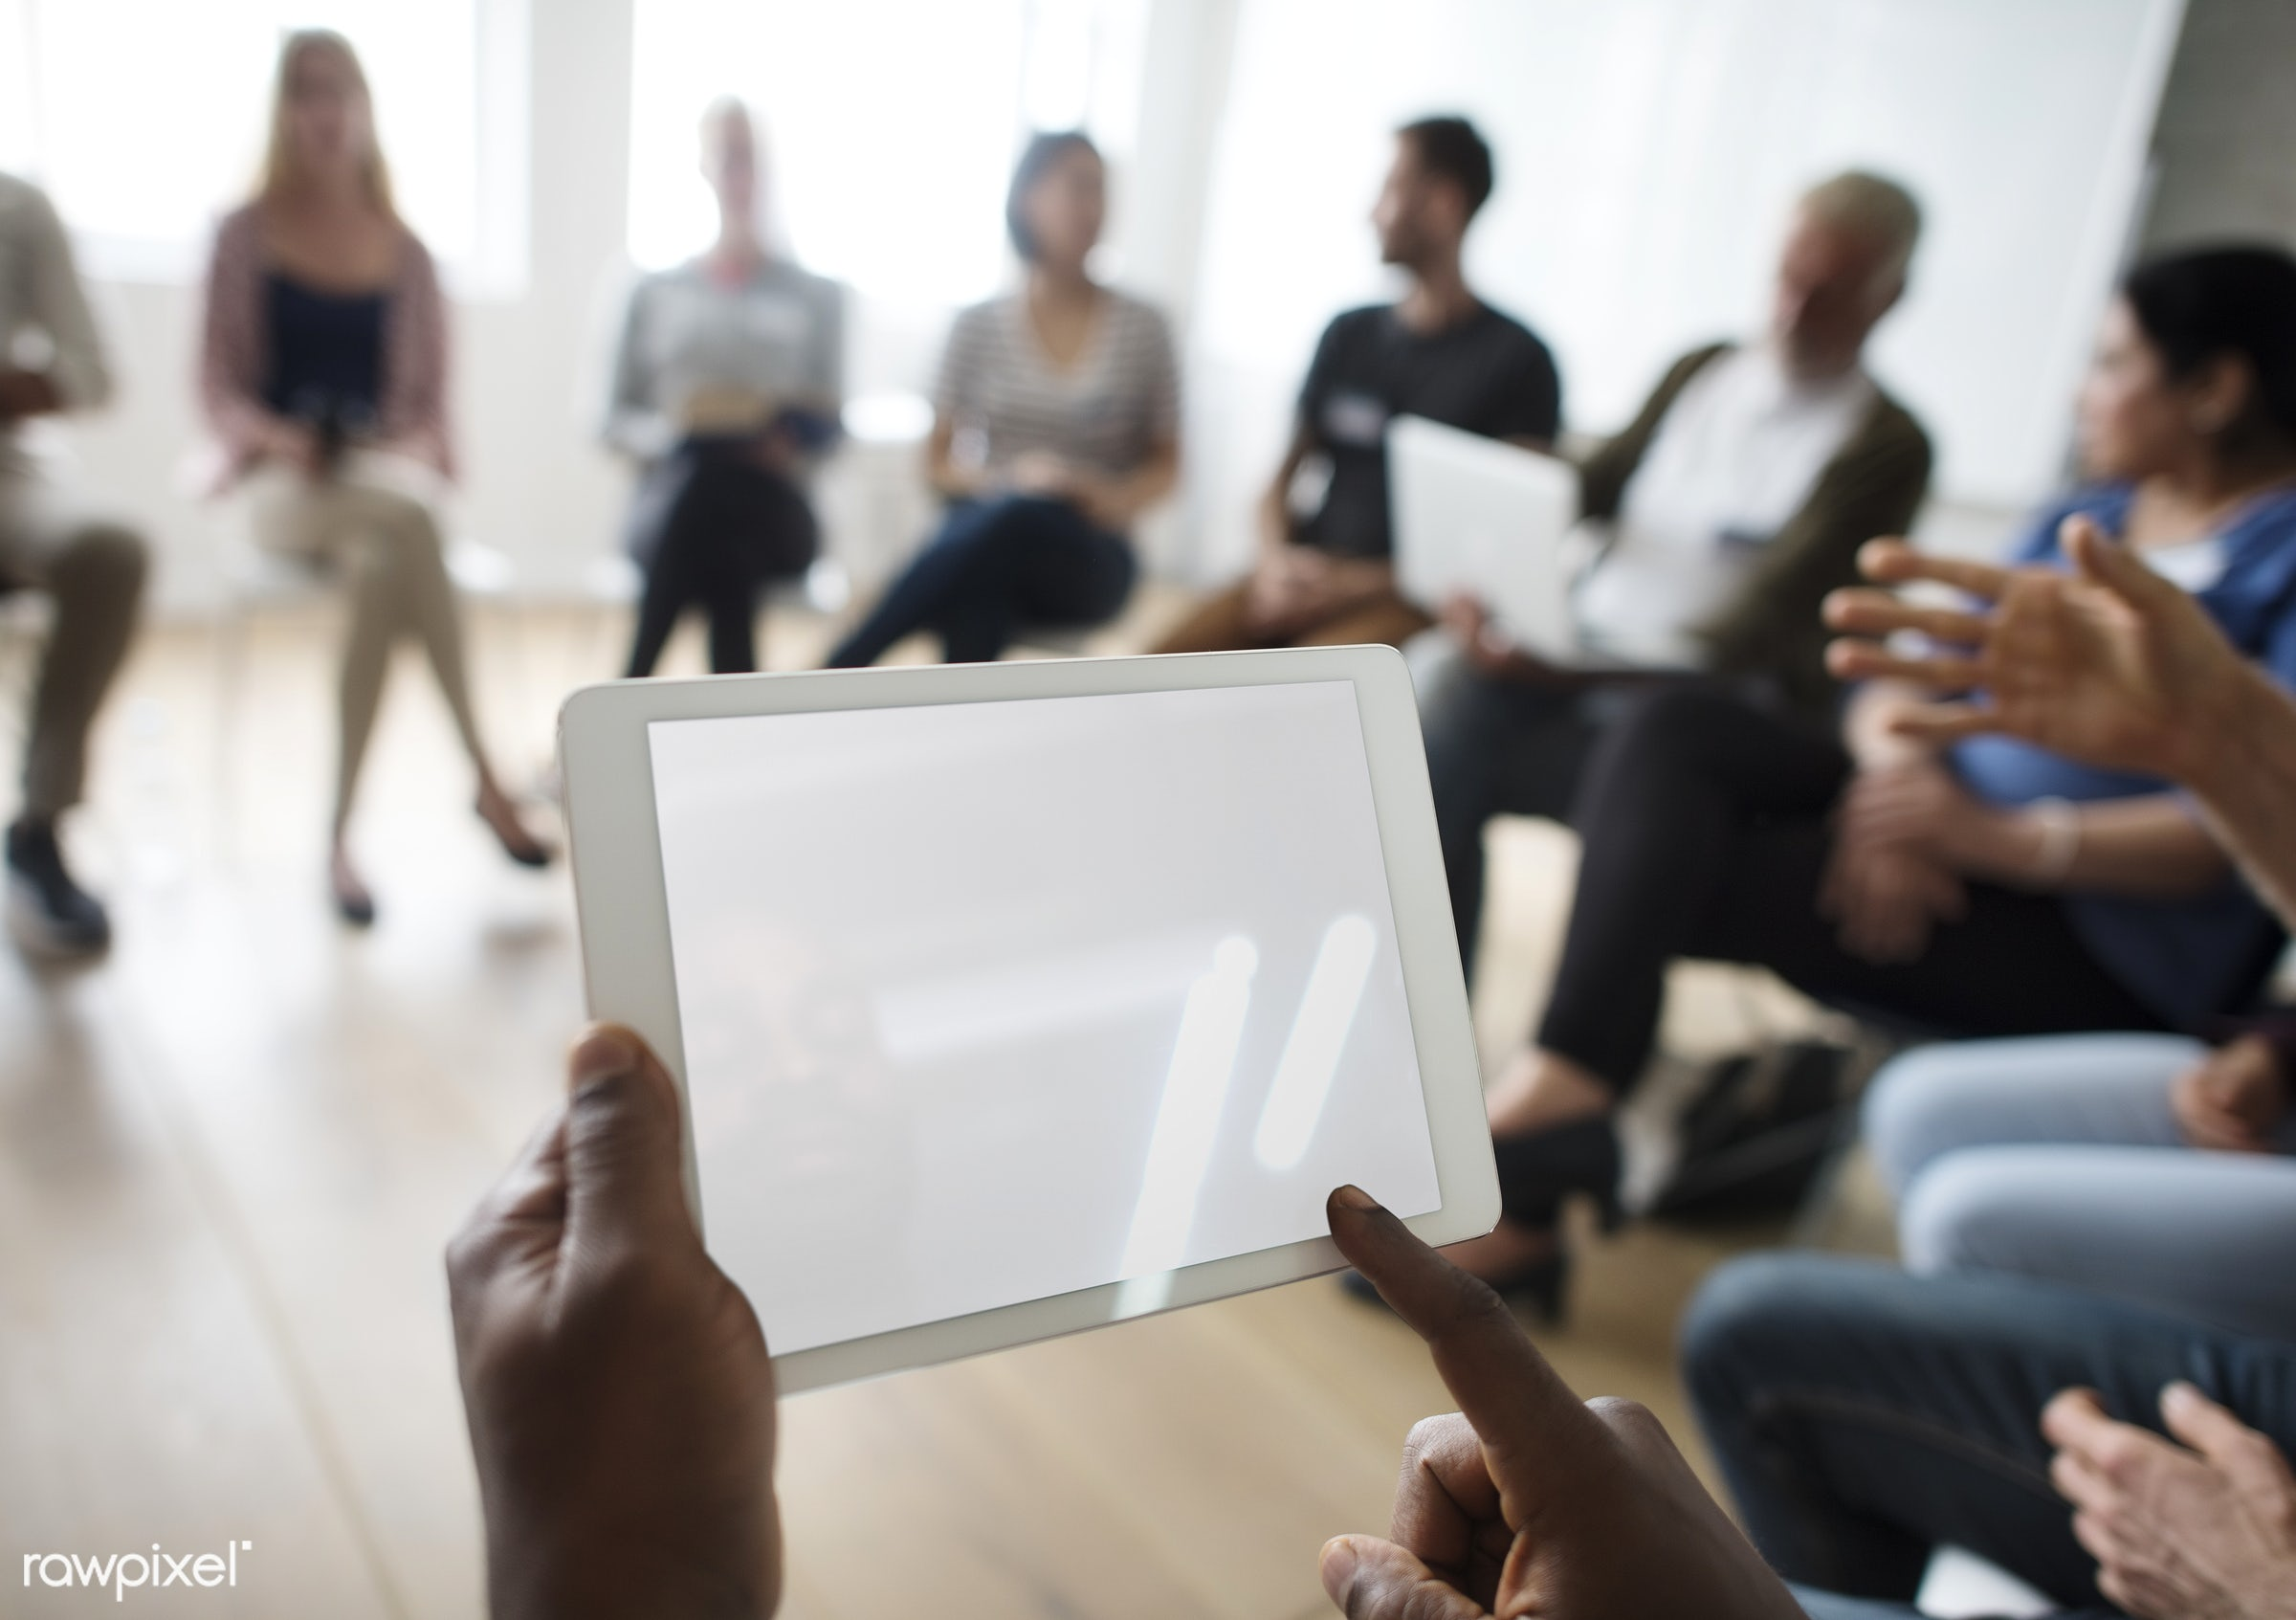 Tablet Networking Seminar Event Concept - person, discussion, technology, indoors, circle, people, together, business,...